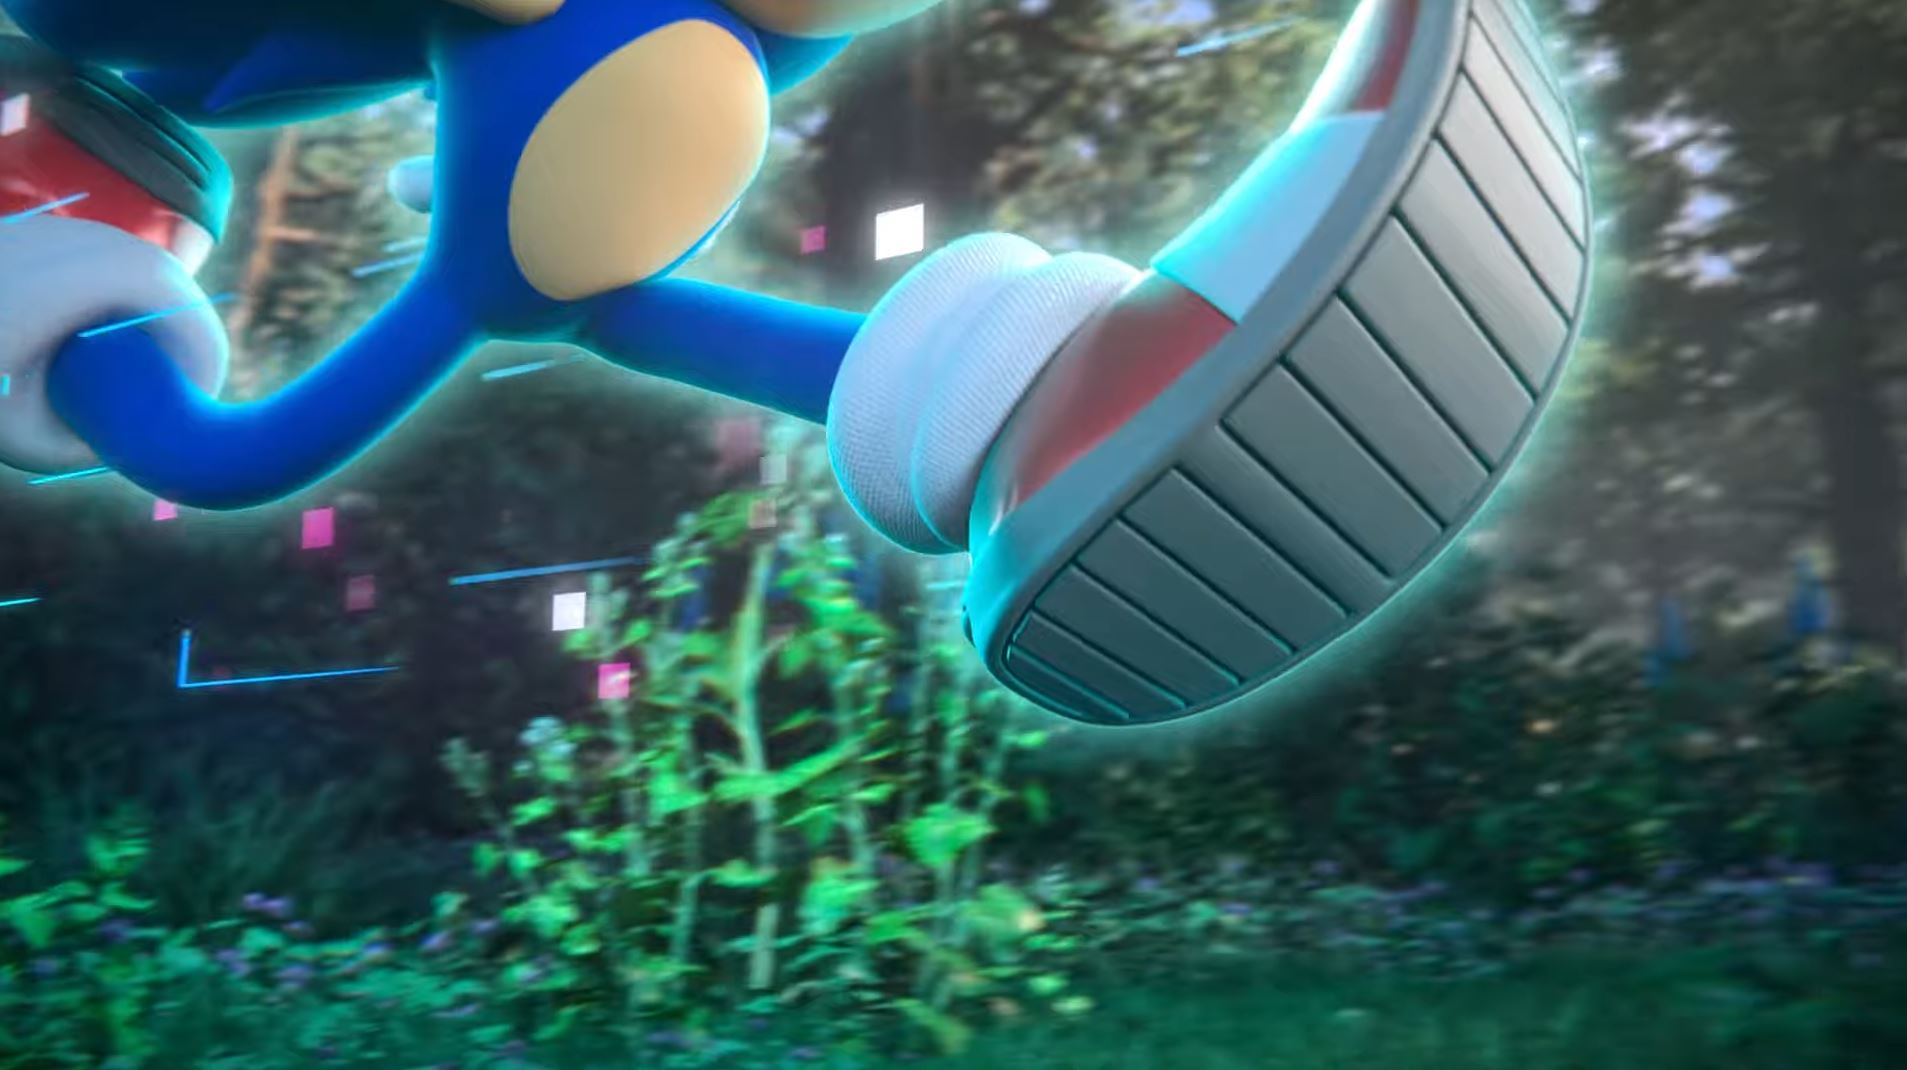 new-sonic-game-for-ps5-and-ps4-coming-in-2022